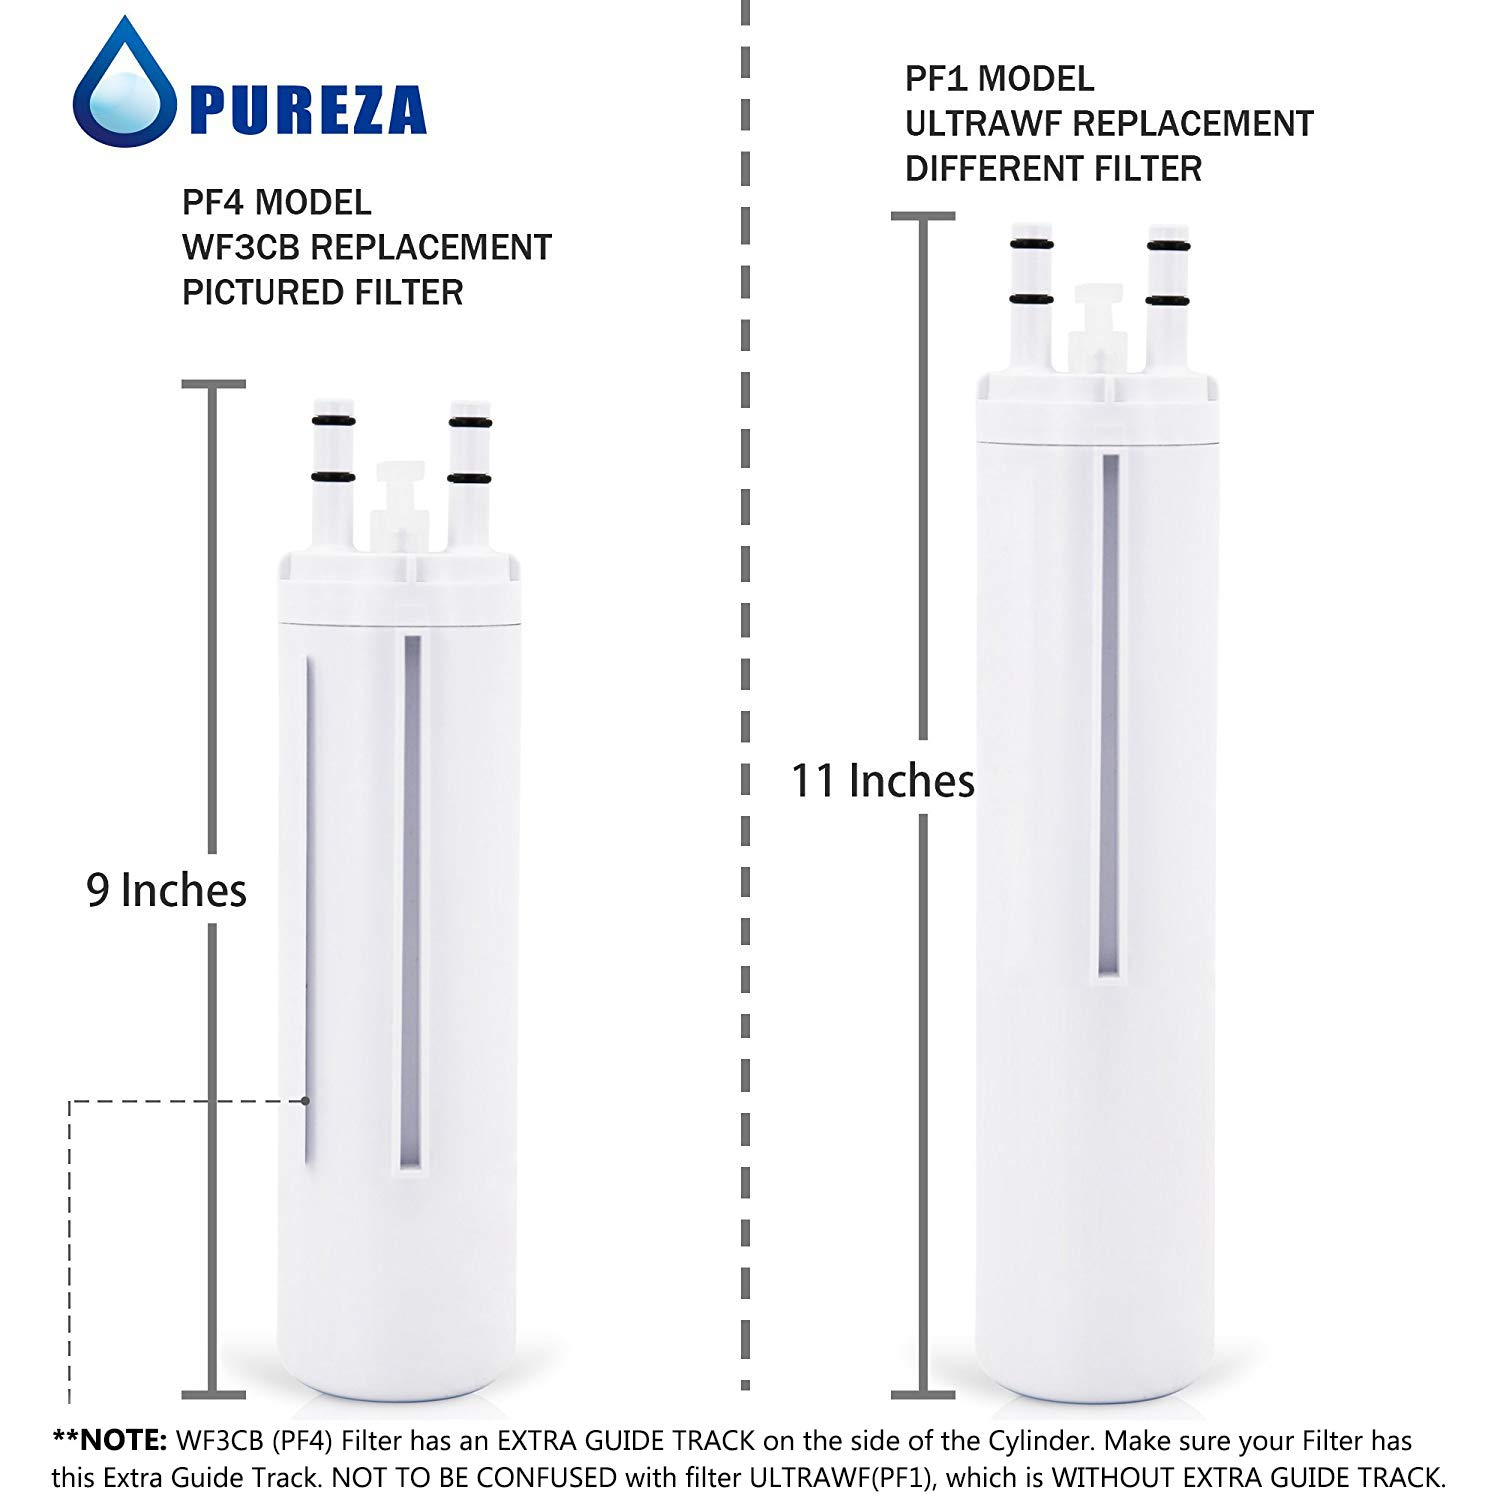 Pureza WF3CB Water Filter - Compatible with WF3CB, Pure Source 3 Refrigerator Water Filter, Pack of 3 by Pureza filters (Image #2)